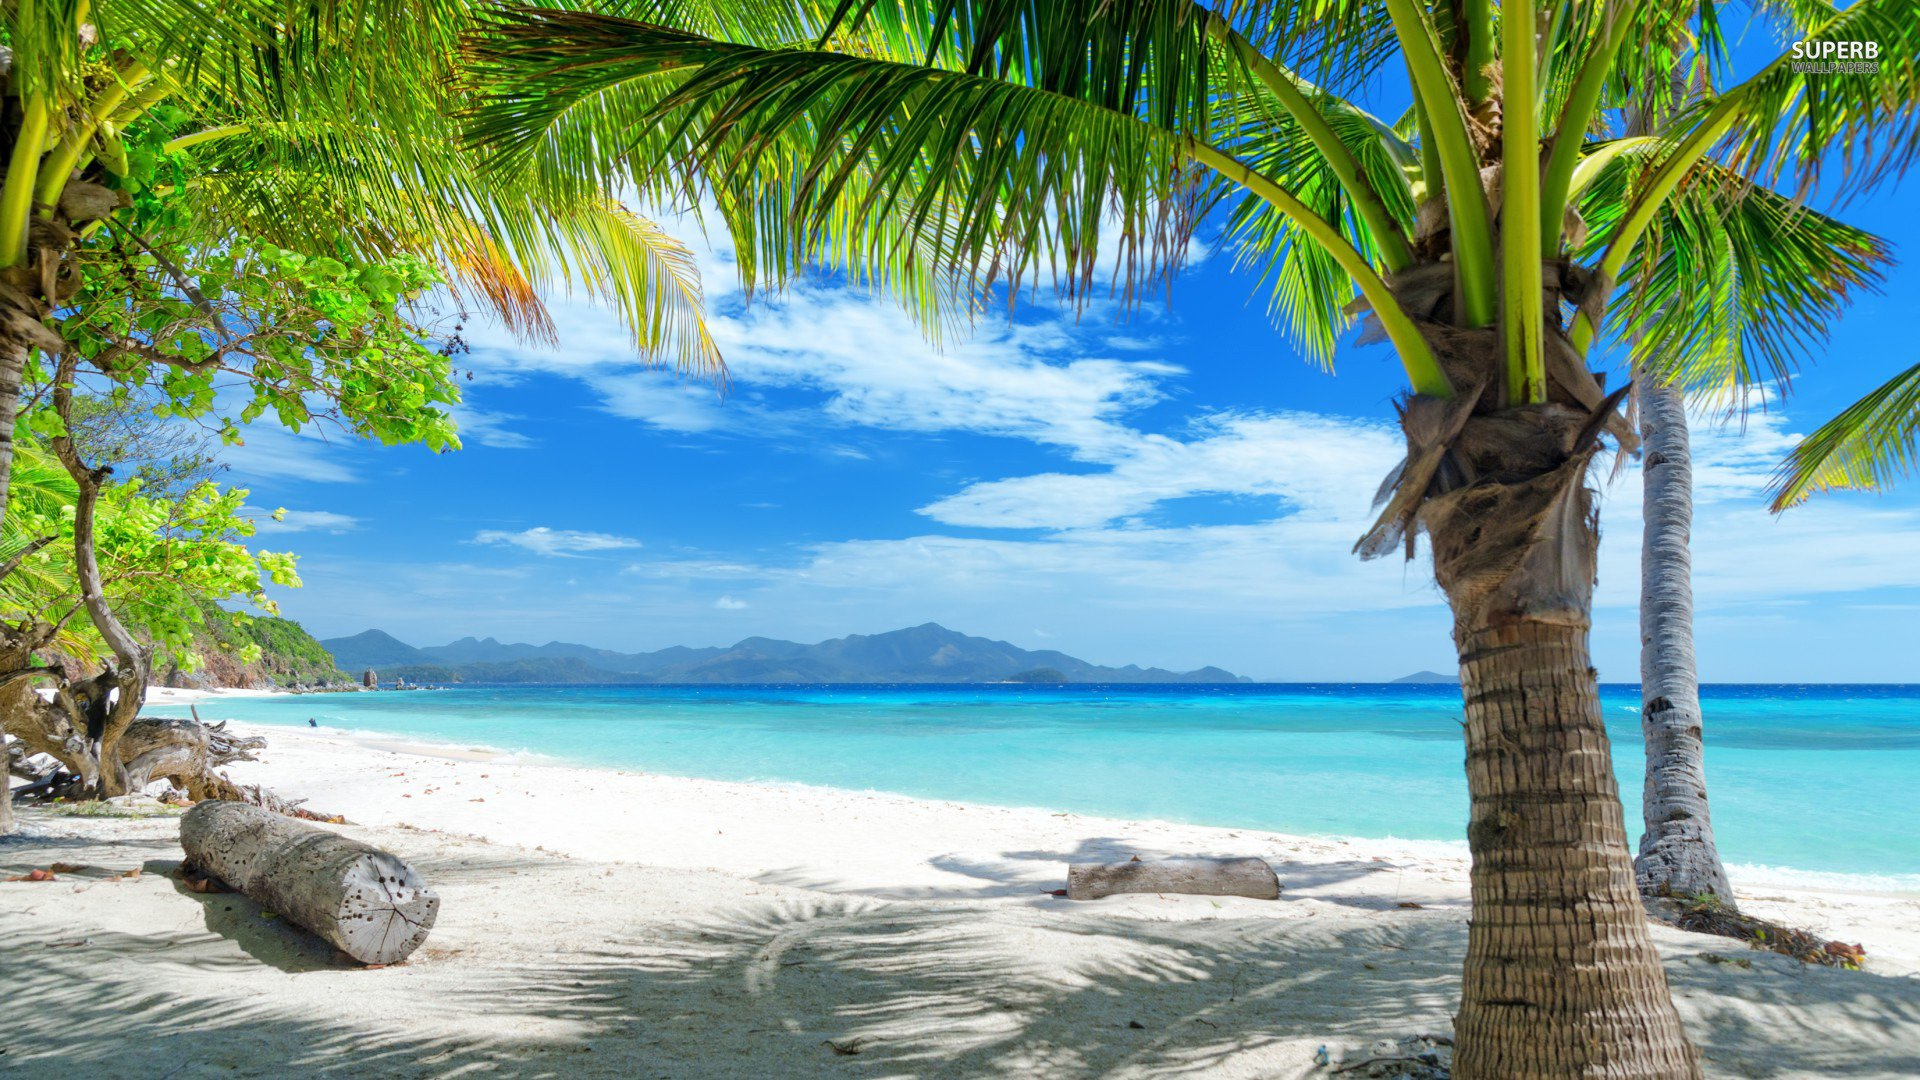 tropical beach hd wallpapers Desktop Backgrounds for HD 1920x1080